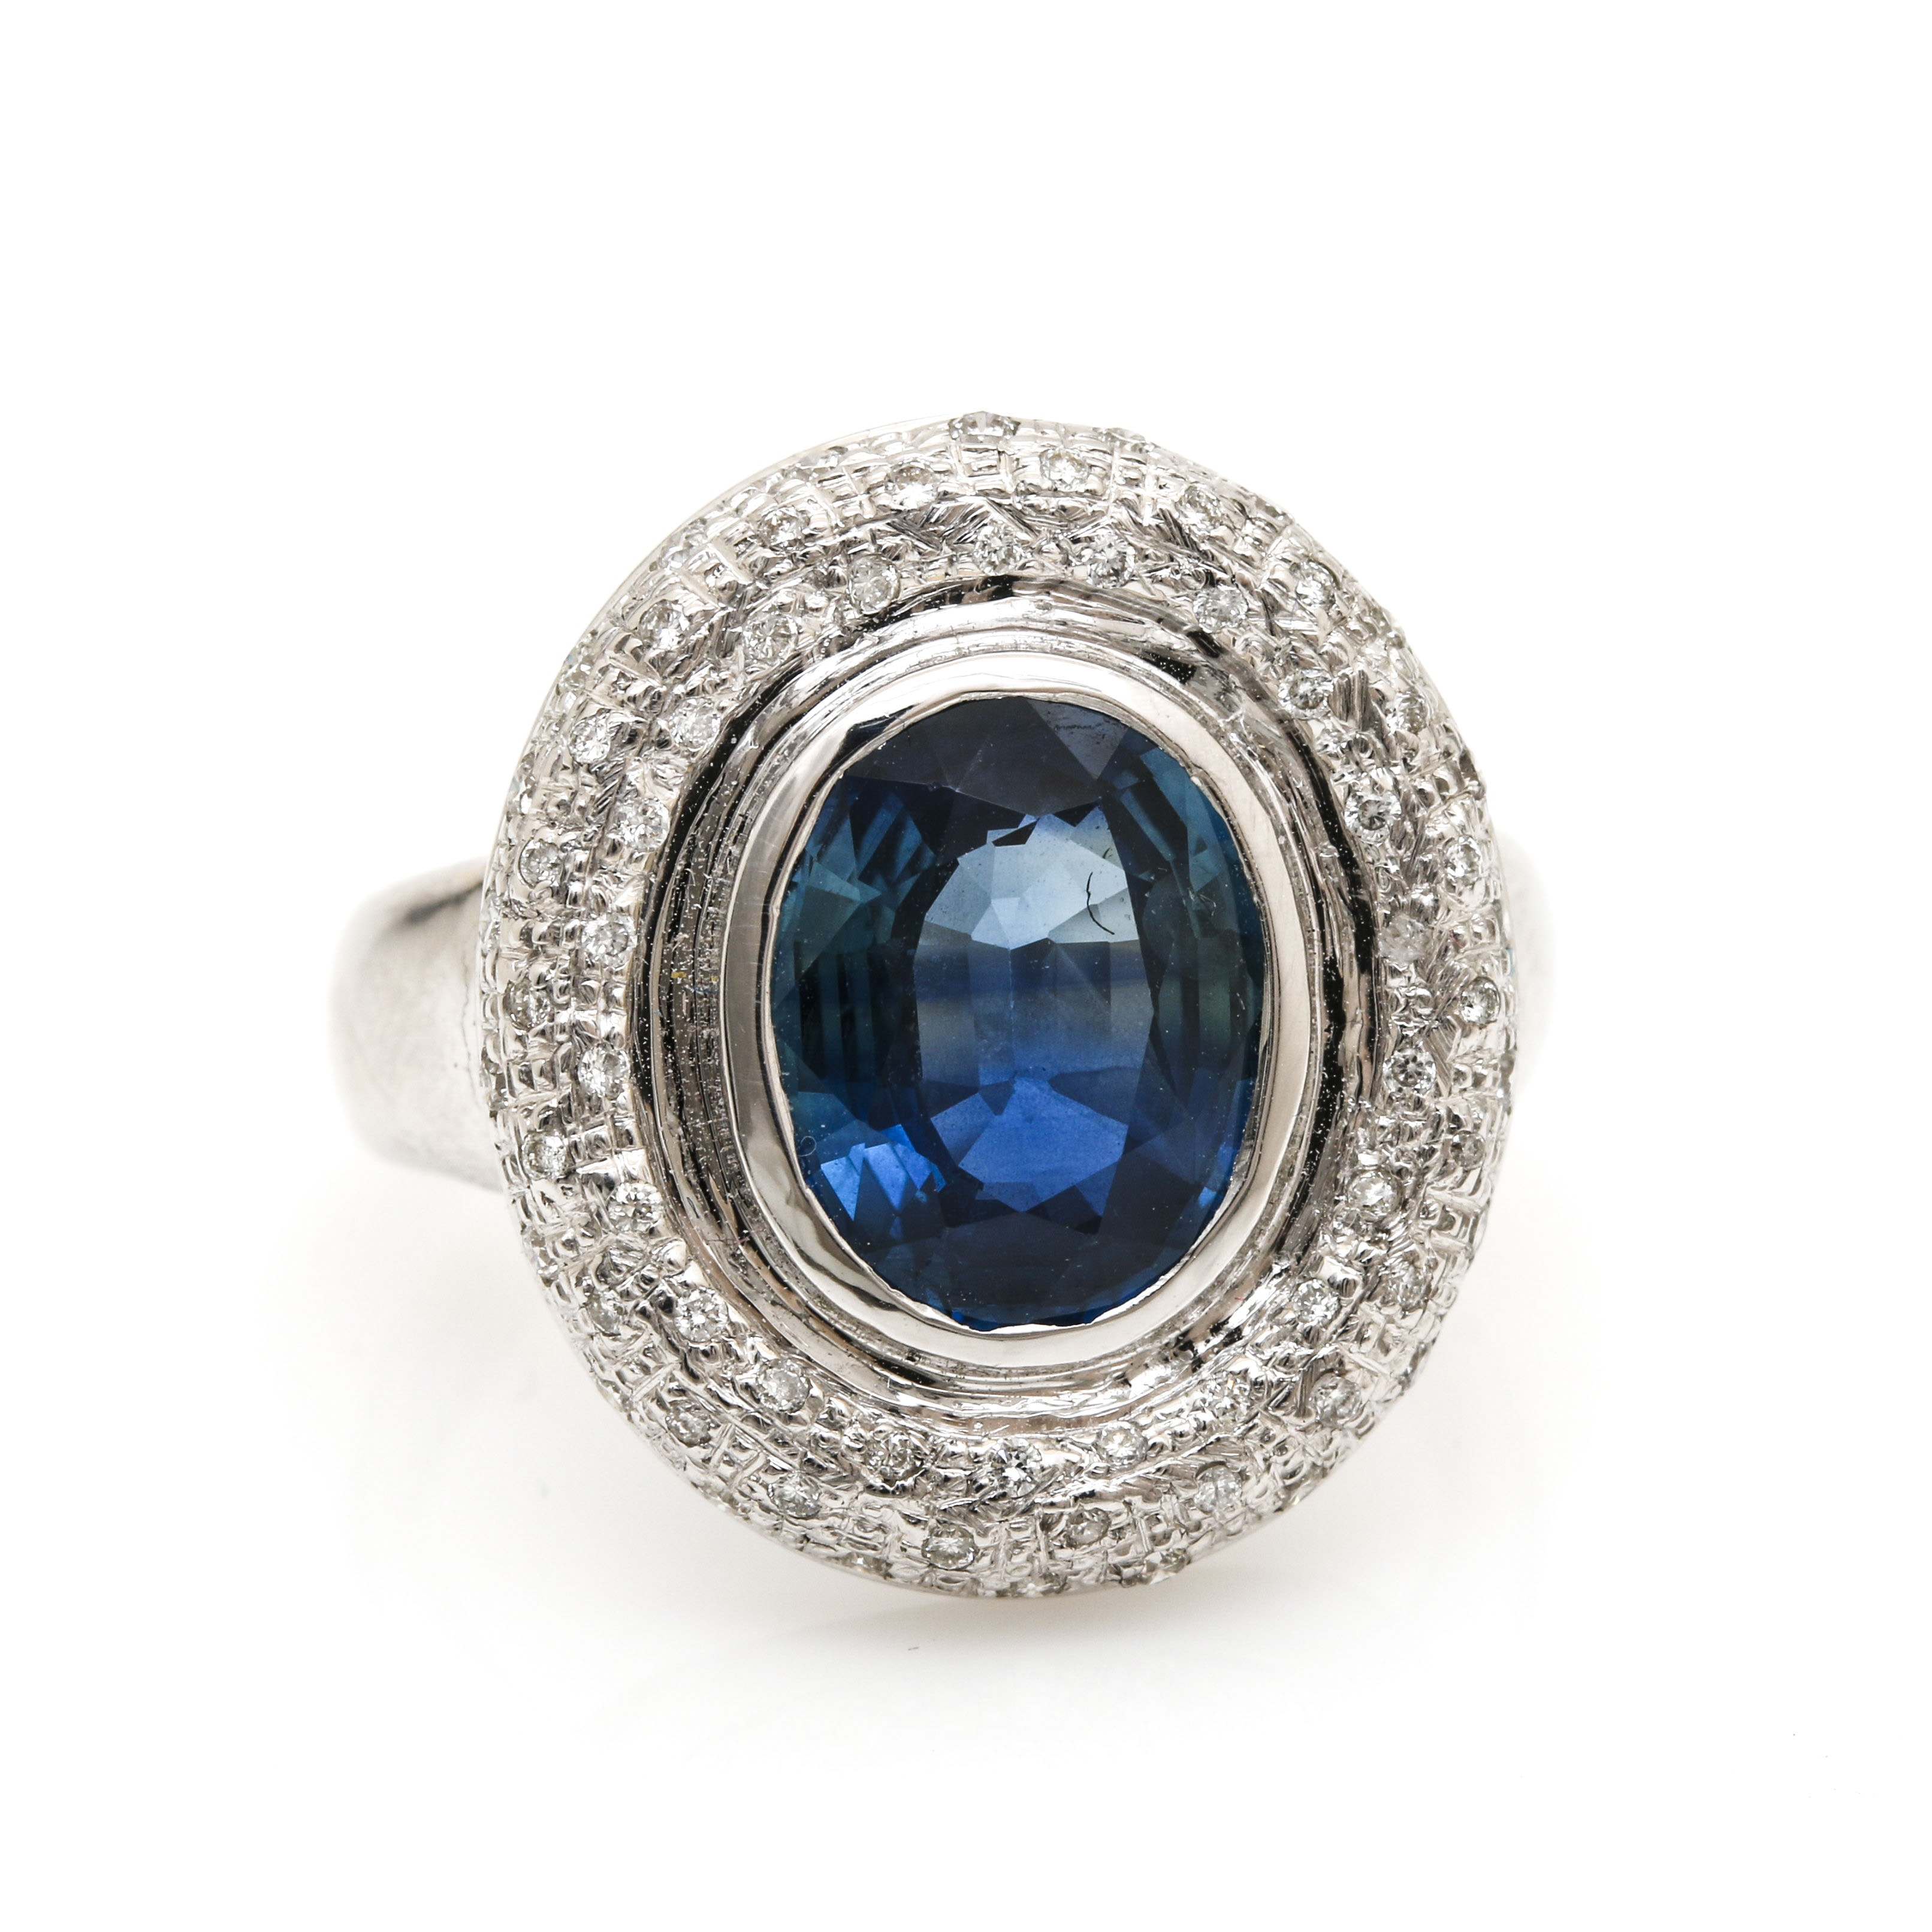 10K White Gold 2.68 CT Sapphire and Diamond Ring